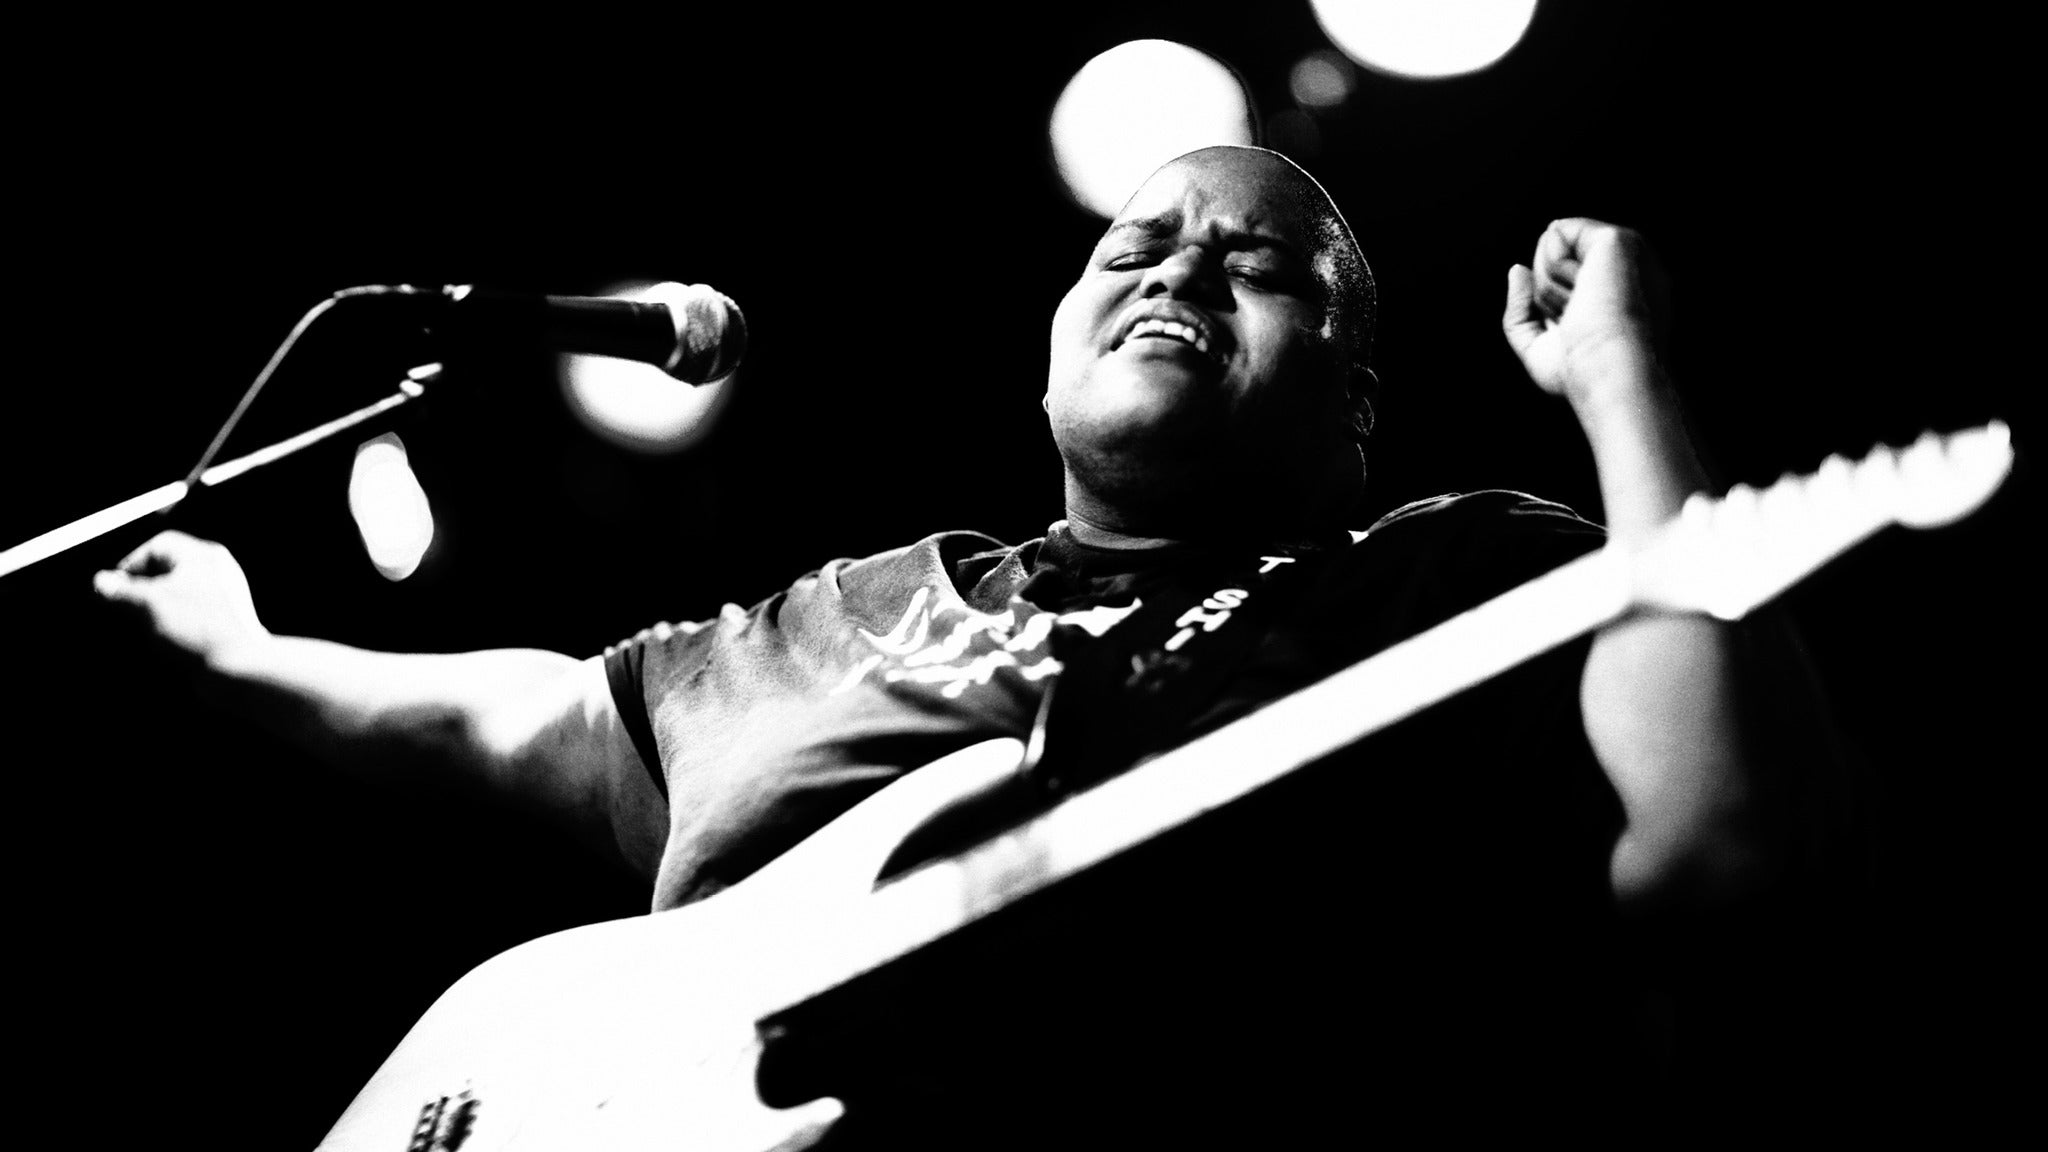 Toshi Reagon and BIGLovely at Royce Hall - UCLA - Los Angeles, CA 90095